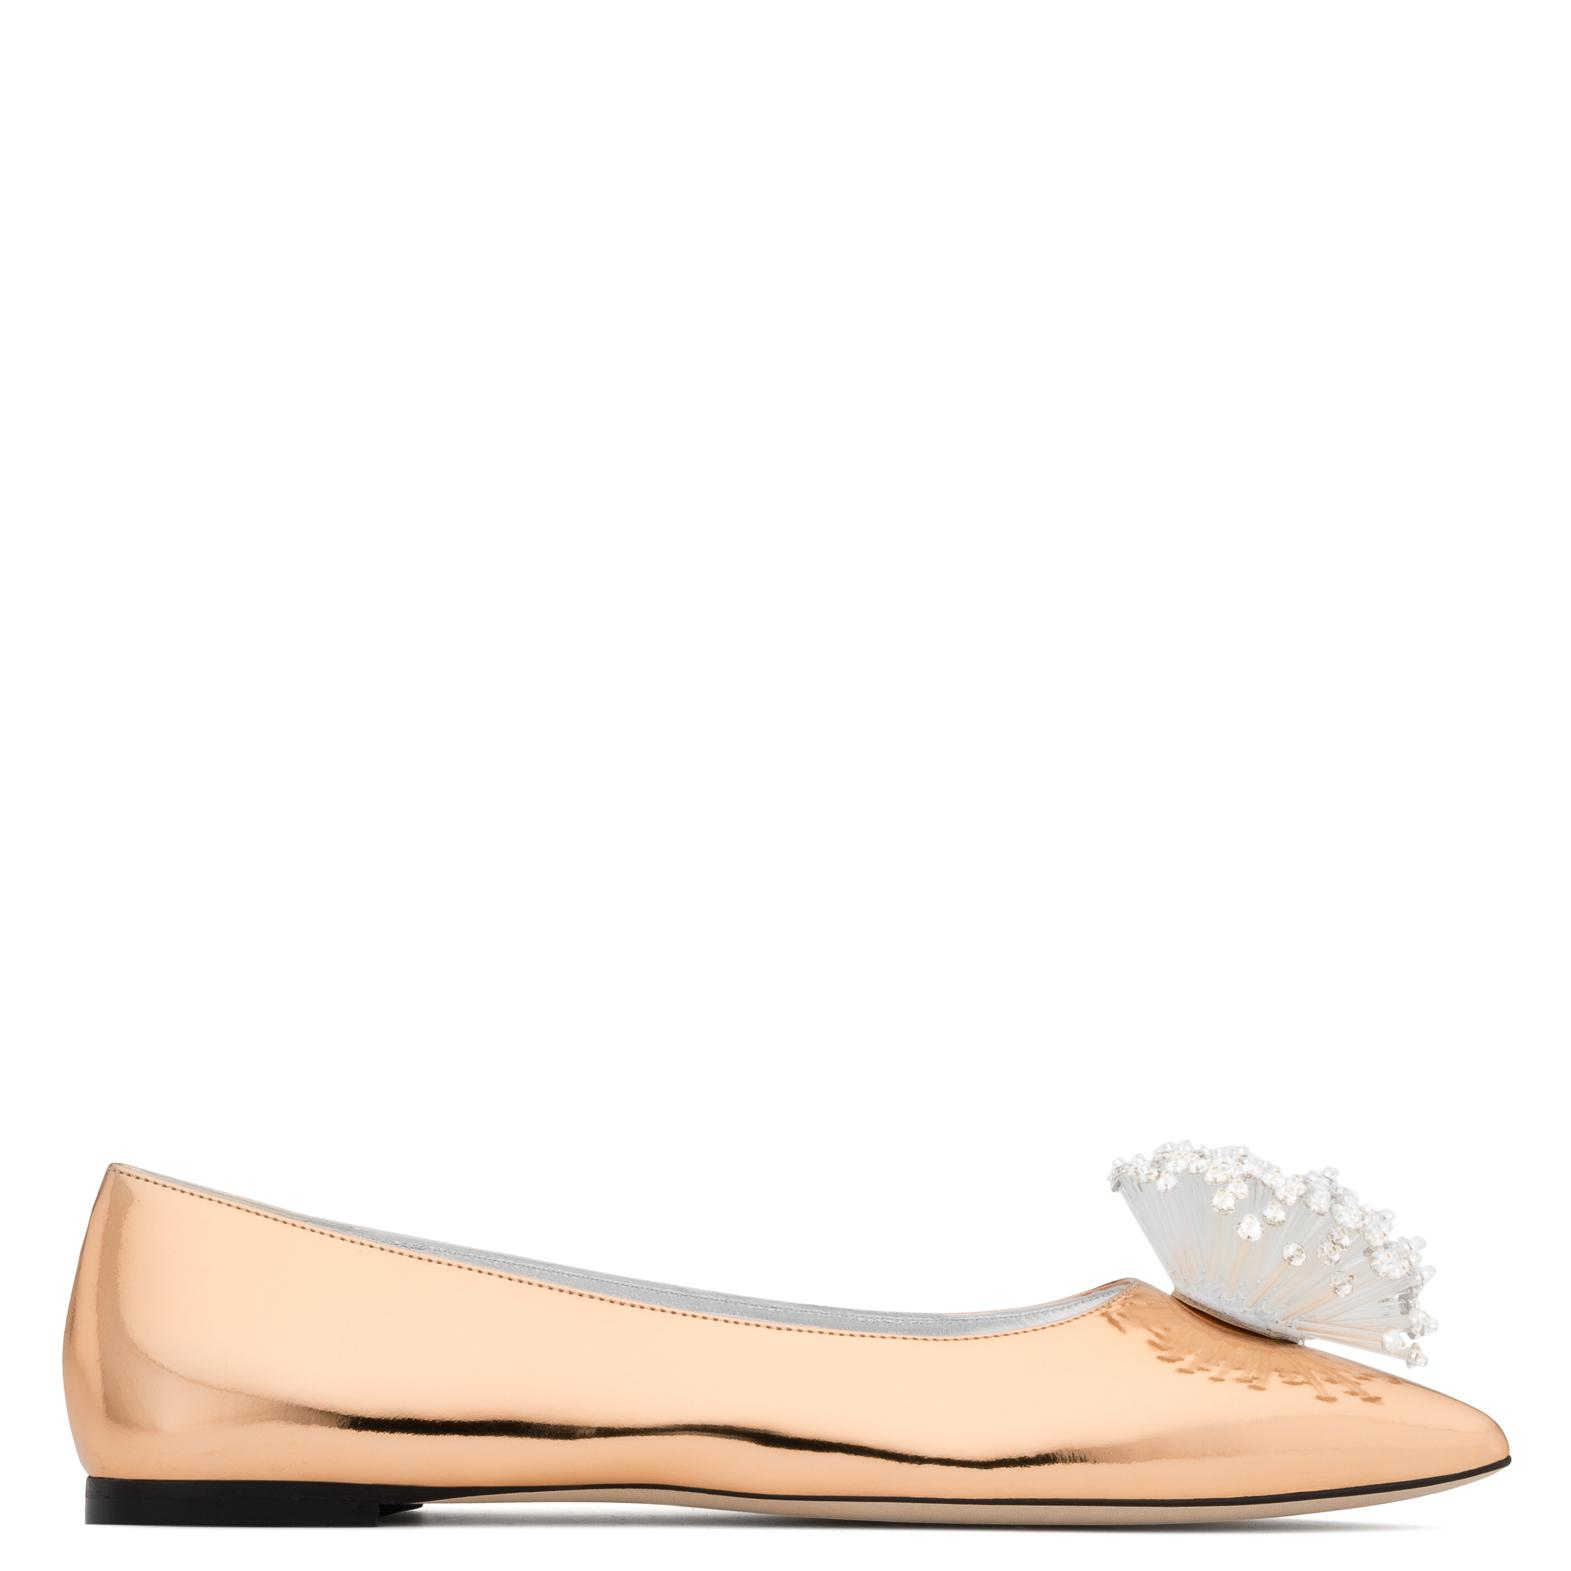 Giuseppe Zanotti Rose mirrored patent leather ballerina flat with accessory NANCIE SUPERNOVA nXJCkQFh